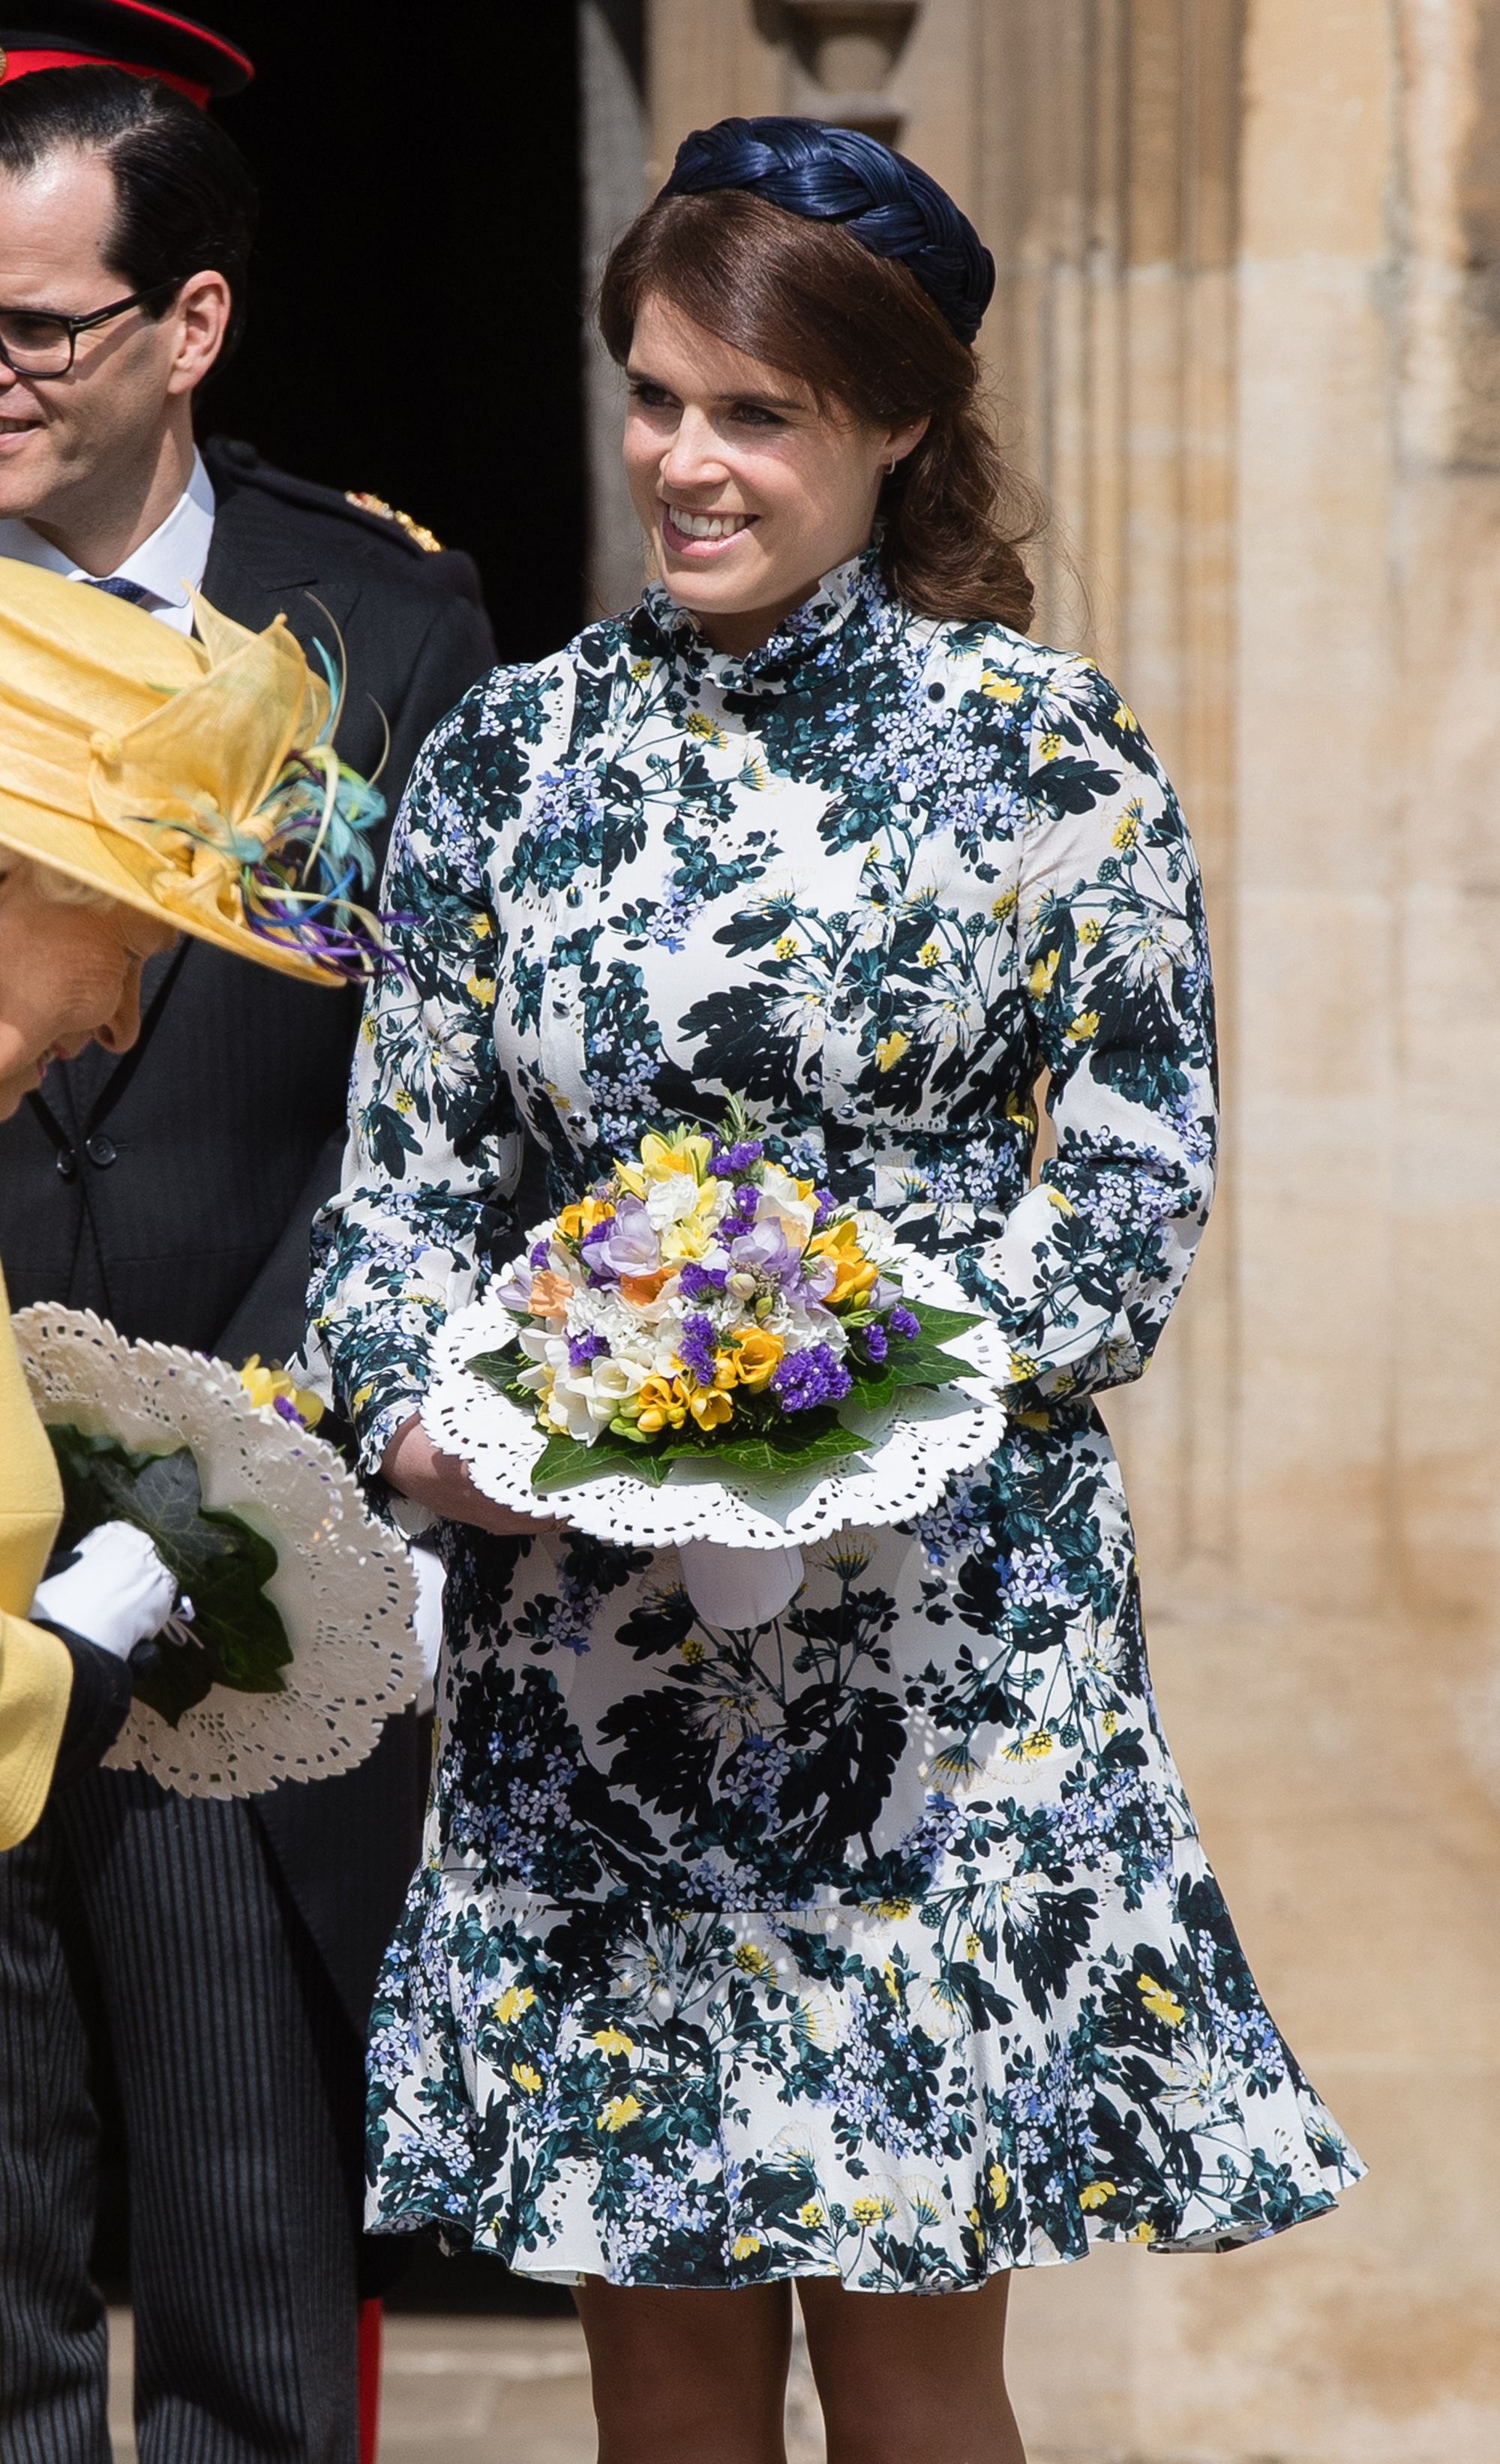 Princess Eugenie Returns to Scene of Her Wedding - Princess Eugenie of York attends the traditional Royal Maundy Service at St George's Chapel on April 18, 2019 in Windsor, England.